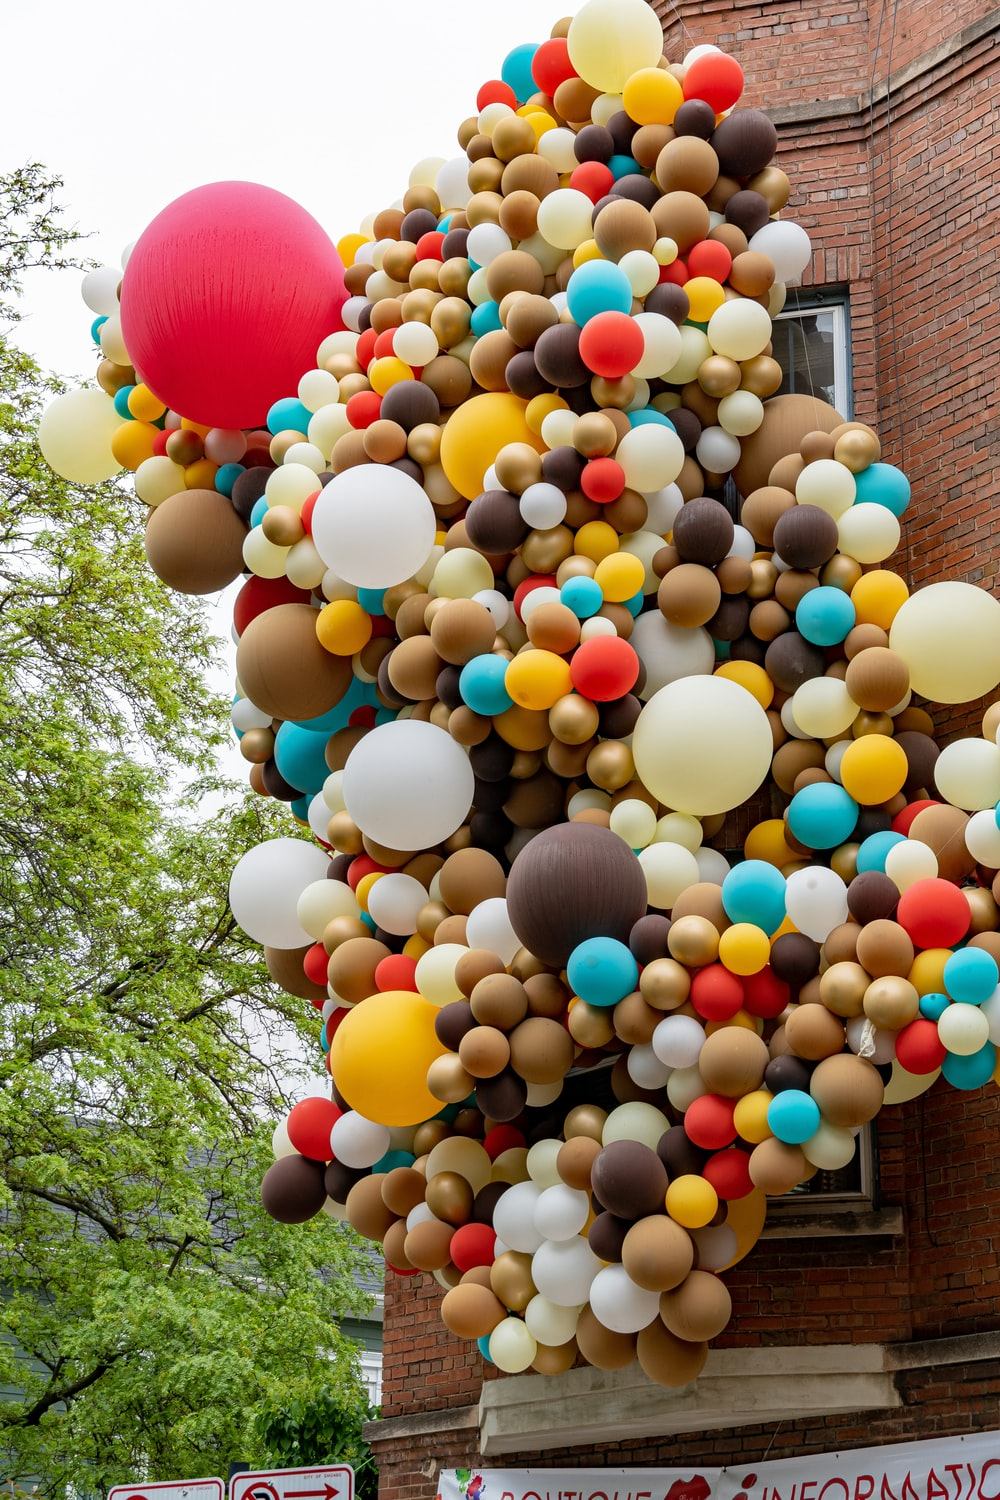 balloon lot in brown building near tree during daytime